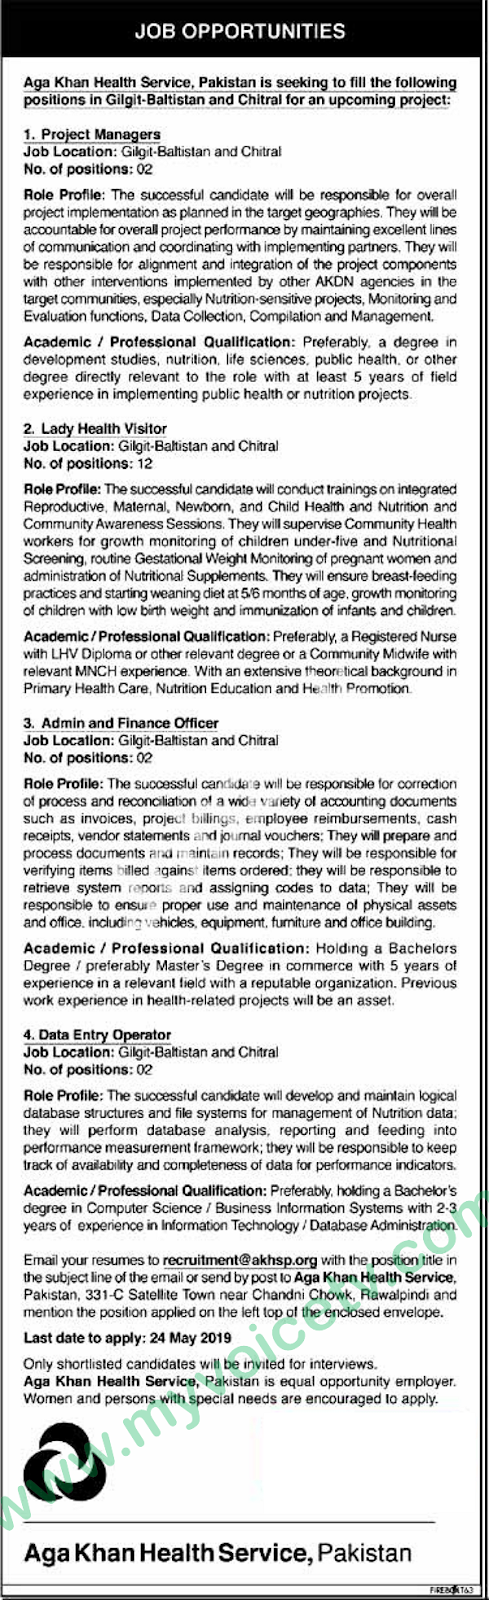 ➨ #Jobs - #Career_Opportunities - #Jobs - Aga Khan Health Services Pakistan for Gilgit and Chitral Region – for application visit the link